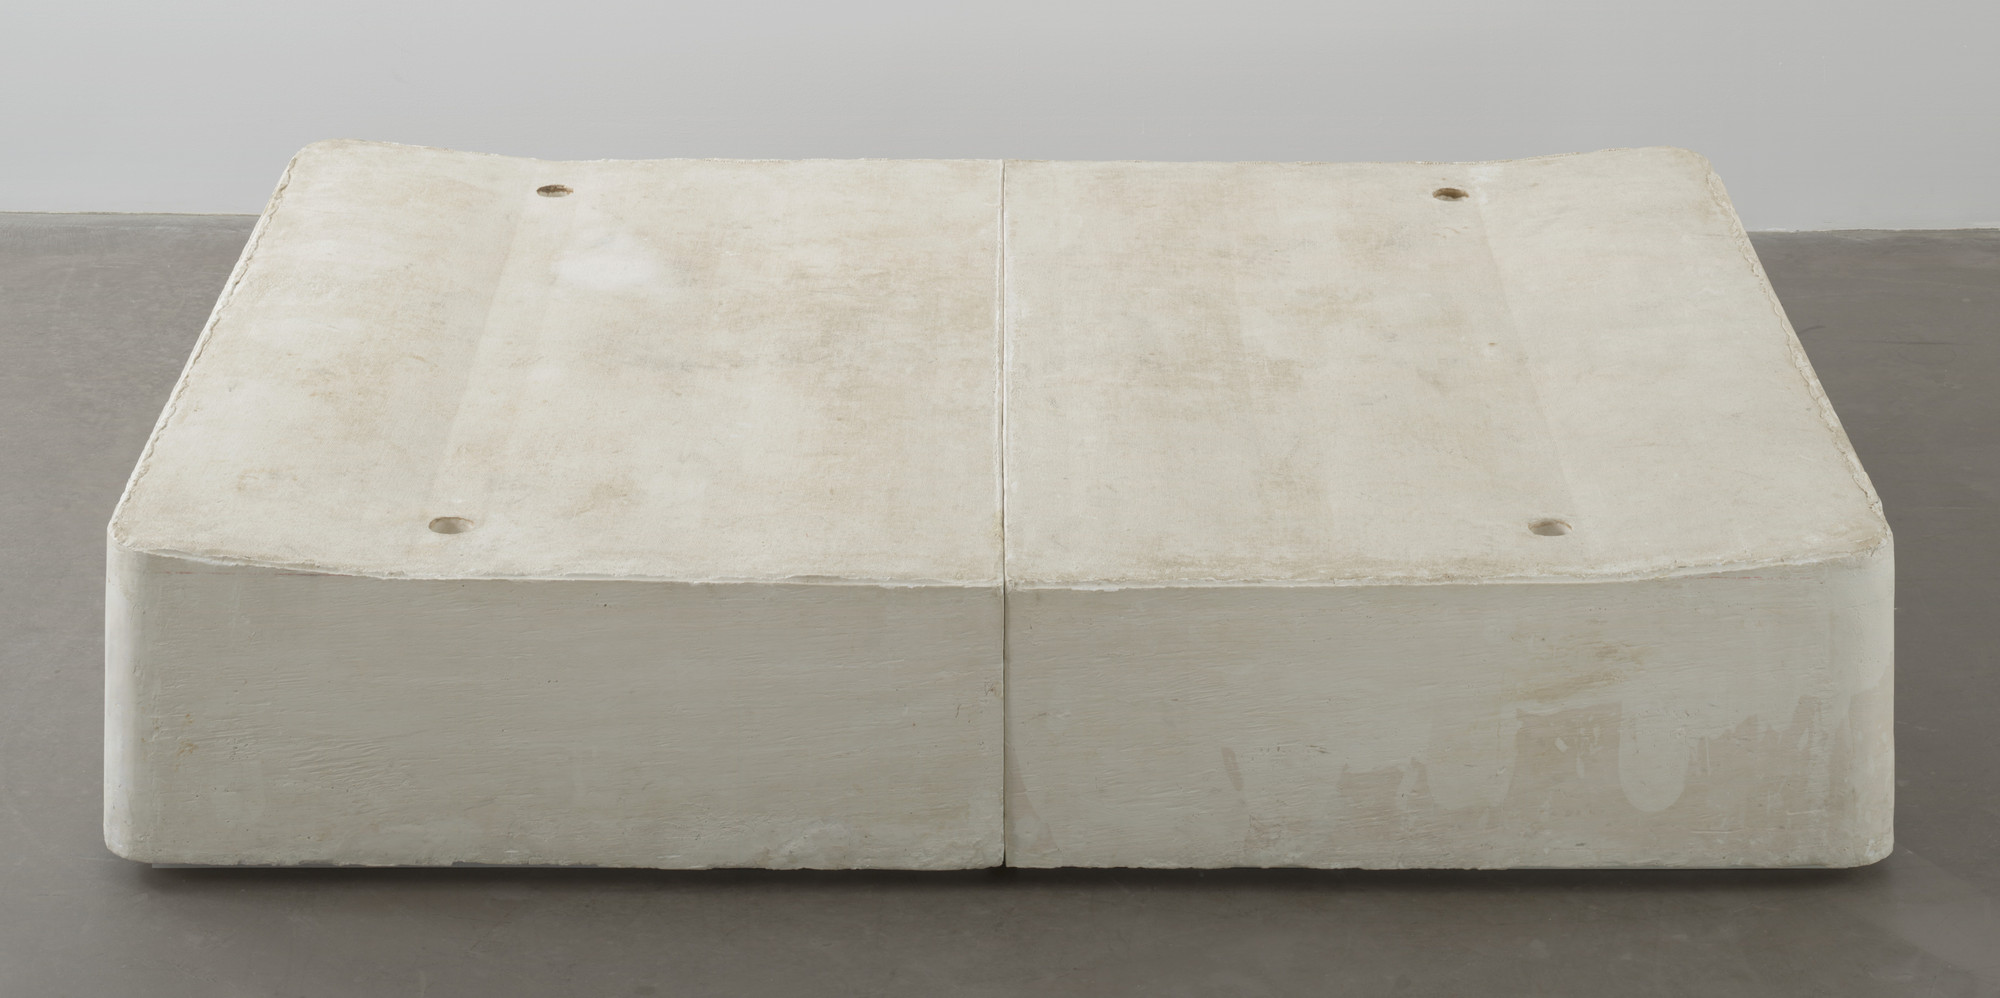 Rachel Whiteread. Untitled (Bed). 1991